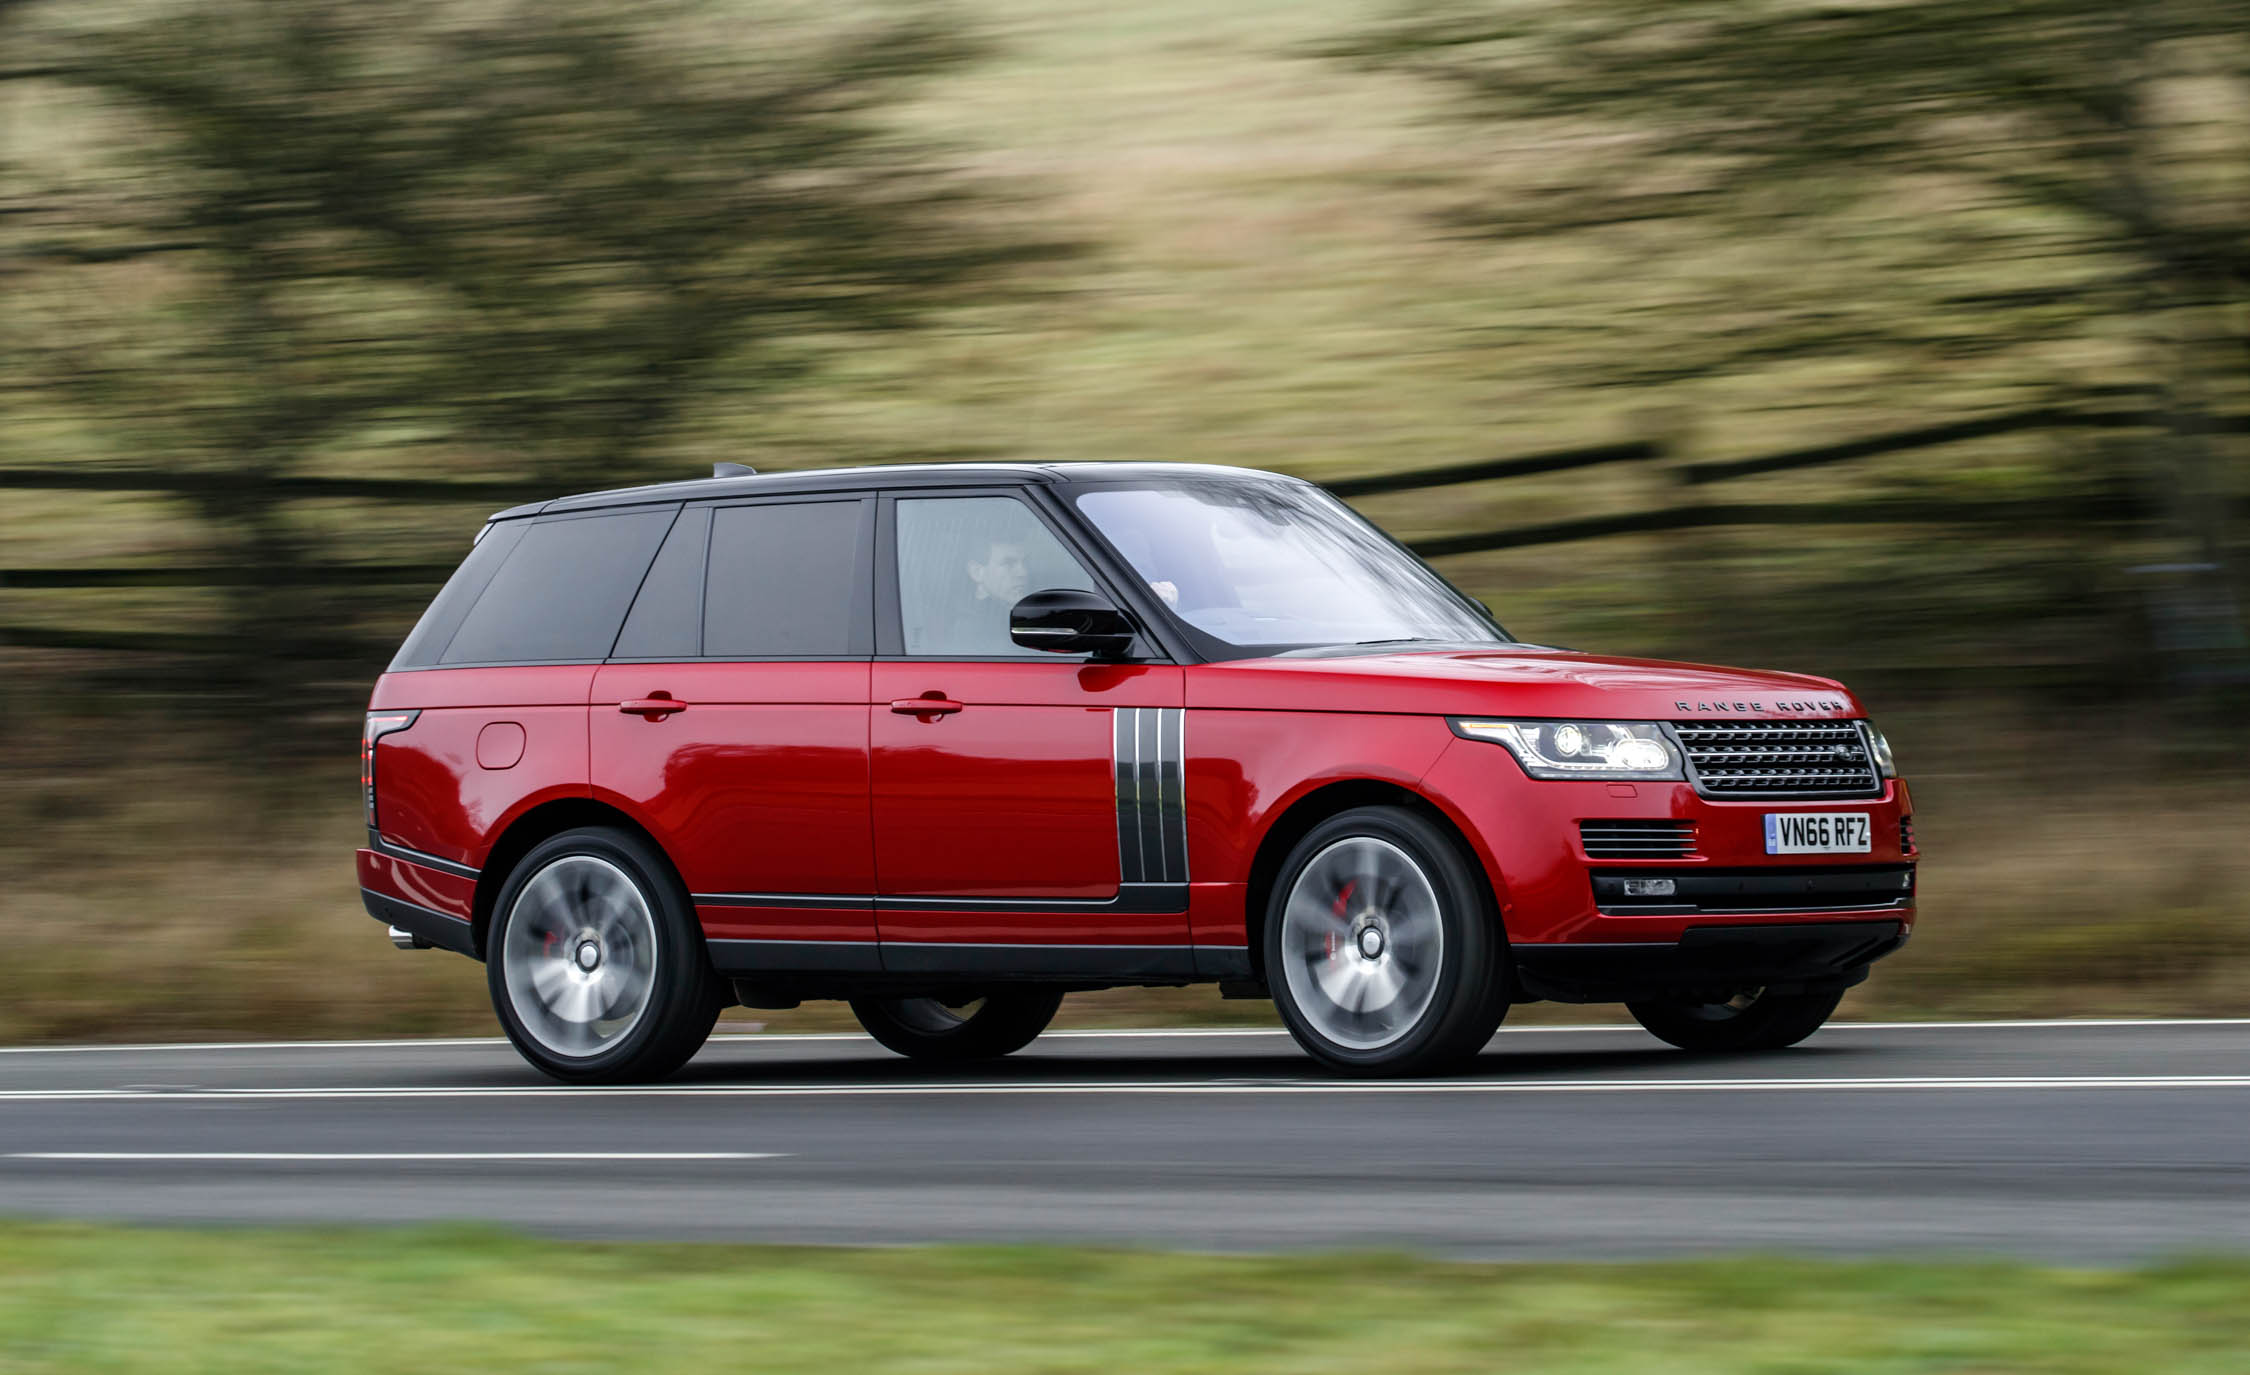 2017 Land Rover Range Rover SVAutobiography Dynamic Test Drive Side And Front View (Photo 21 of 24)